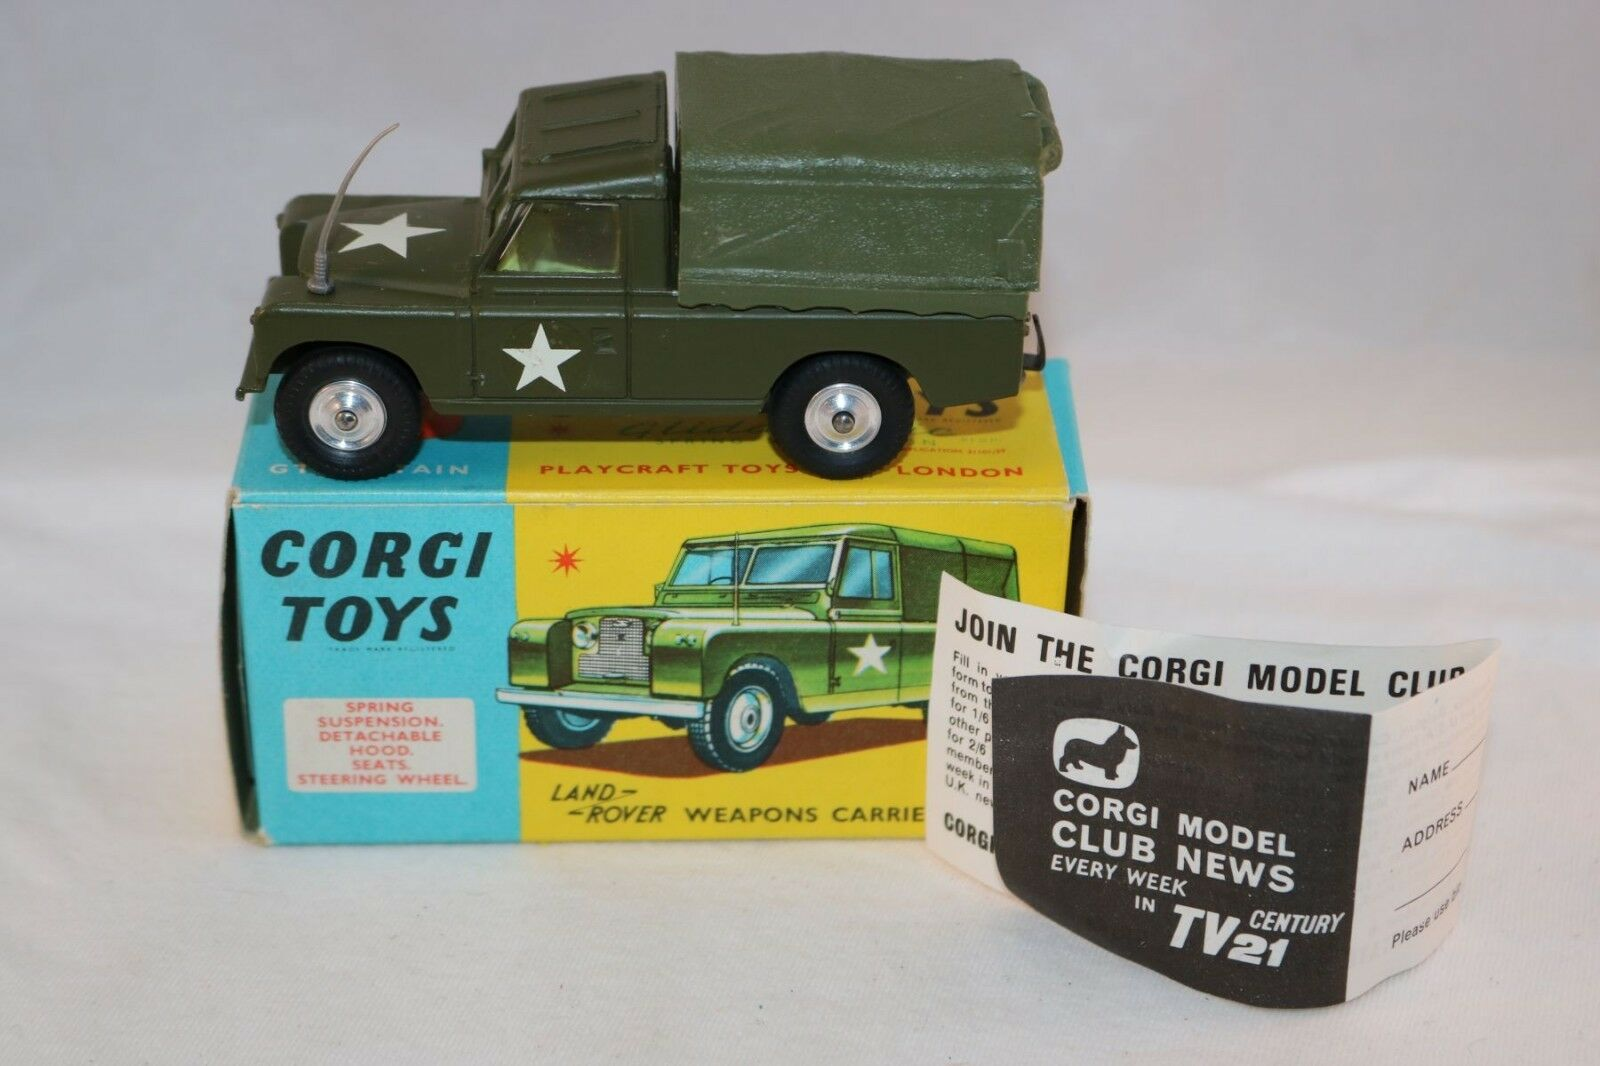 Corgi Toys 357 Land Rover Weapons Carrier perfect mint in box Superb